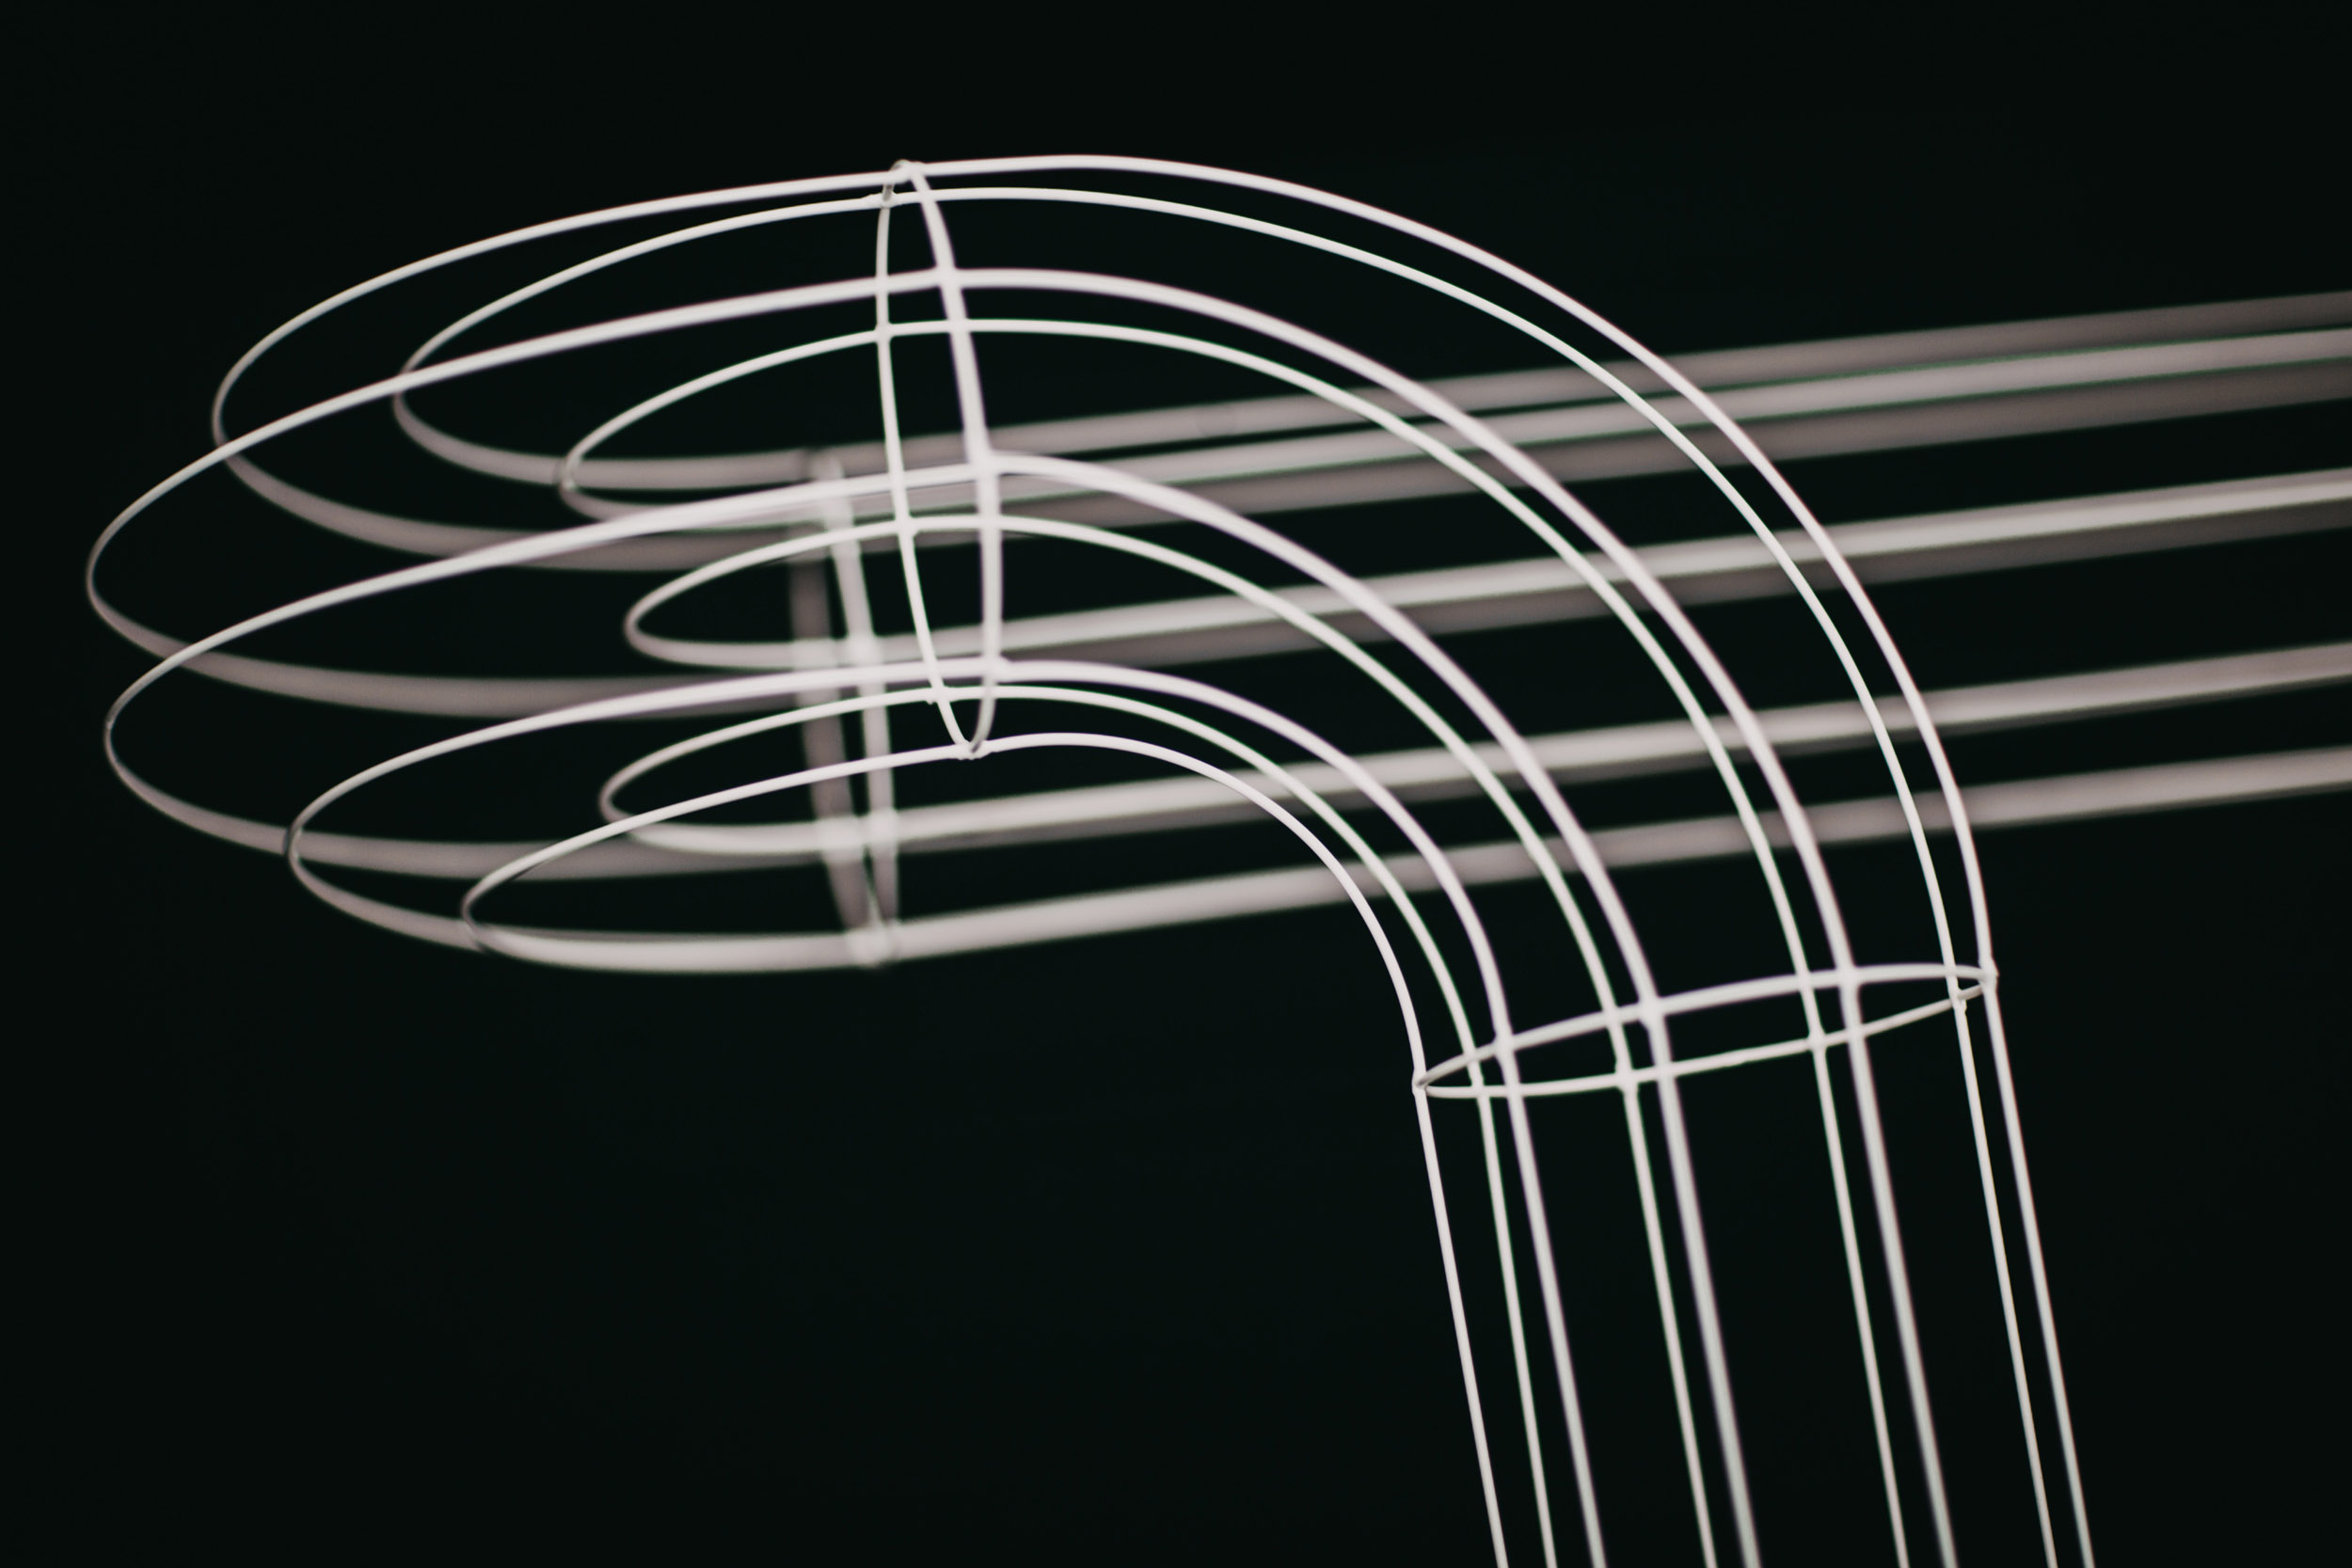 A detail of Luminary wire frame sculpture